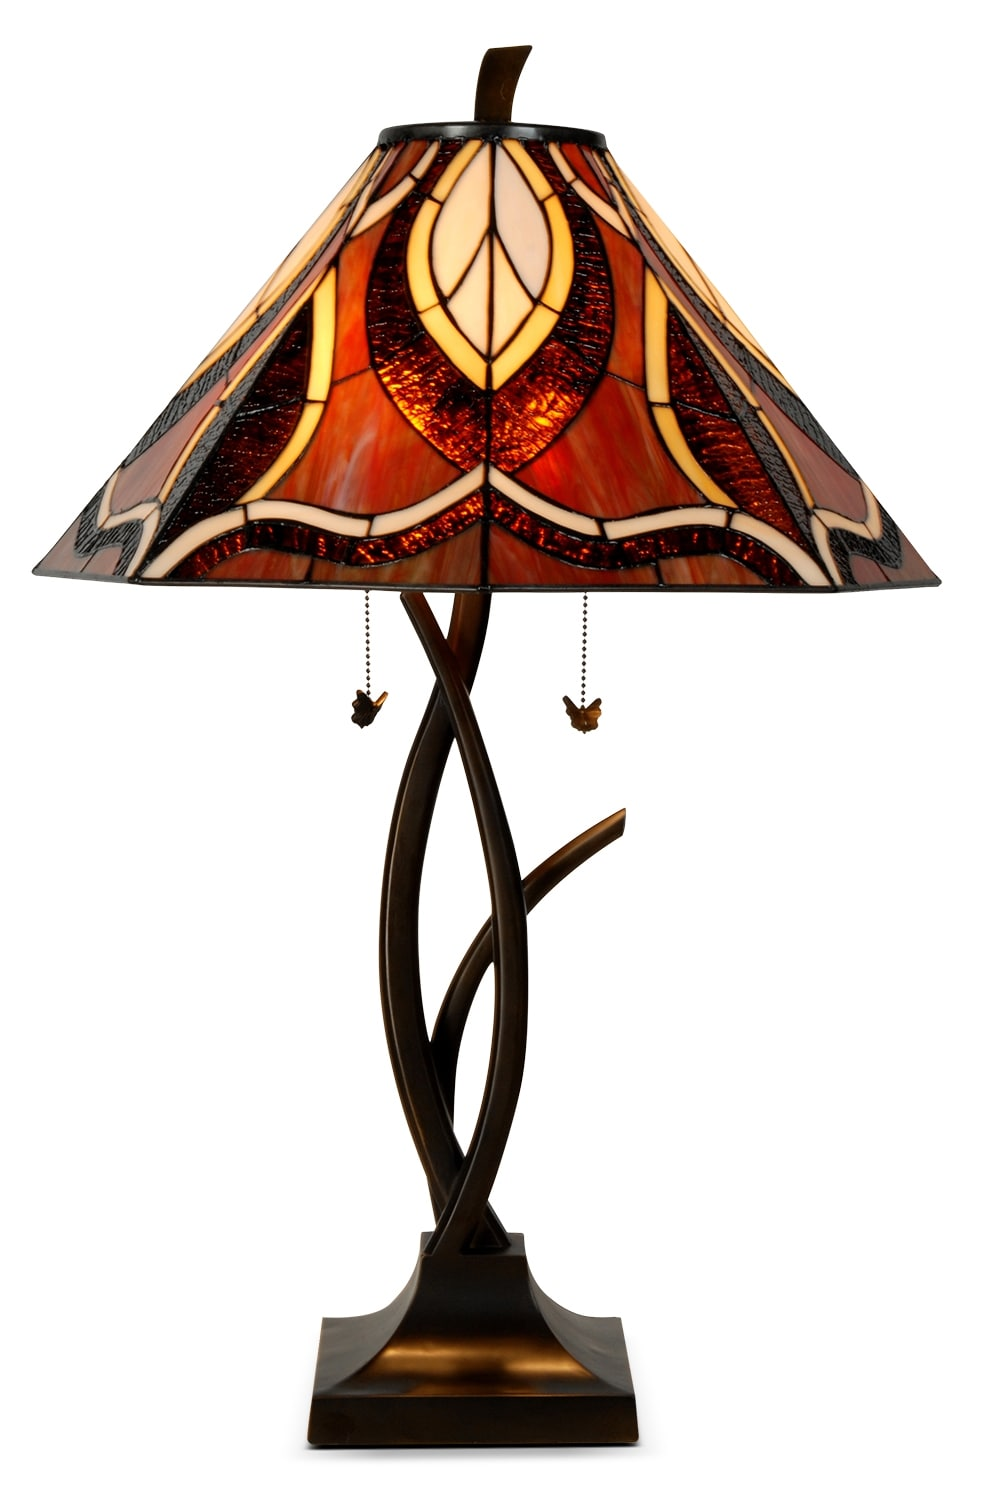 Home Accessories - Teslatier Table Lamp with Stained Glass Shade